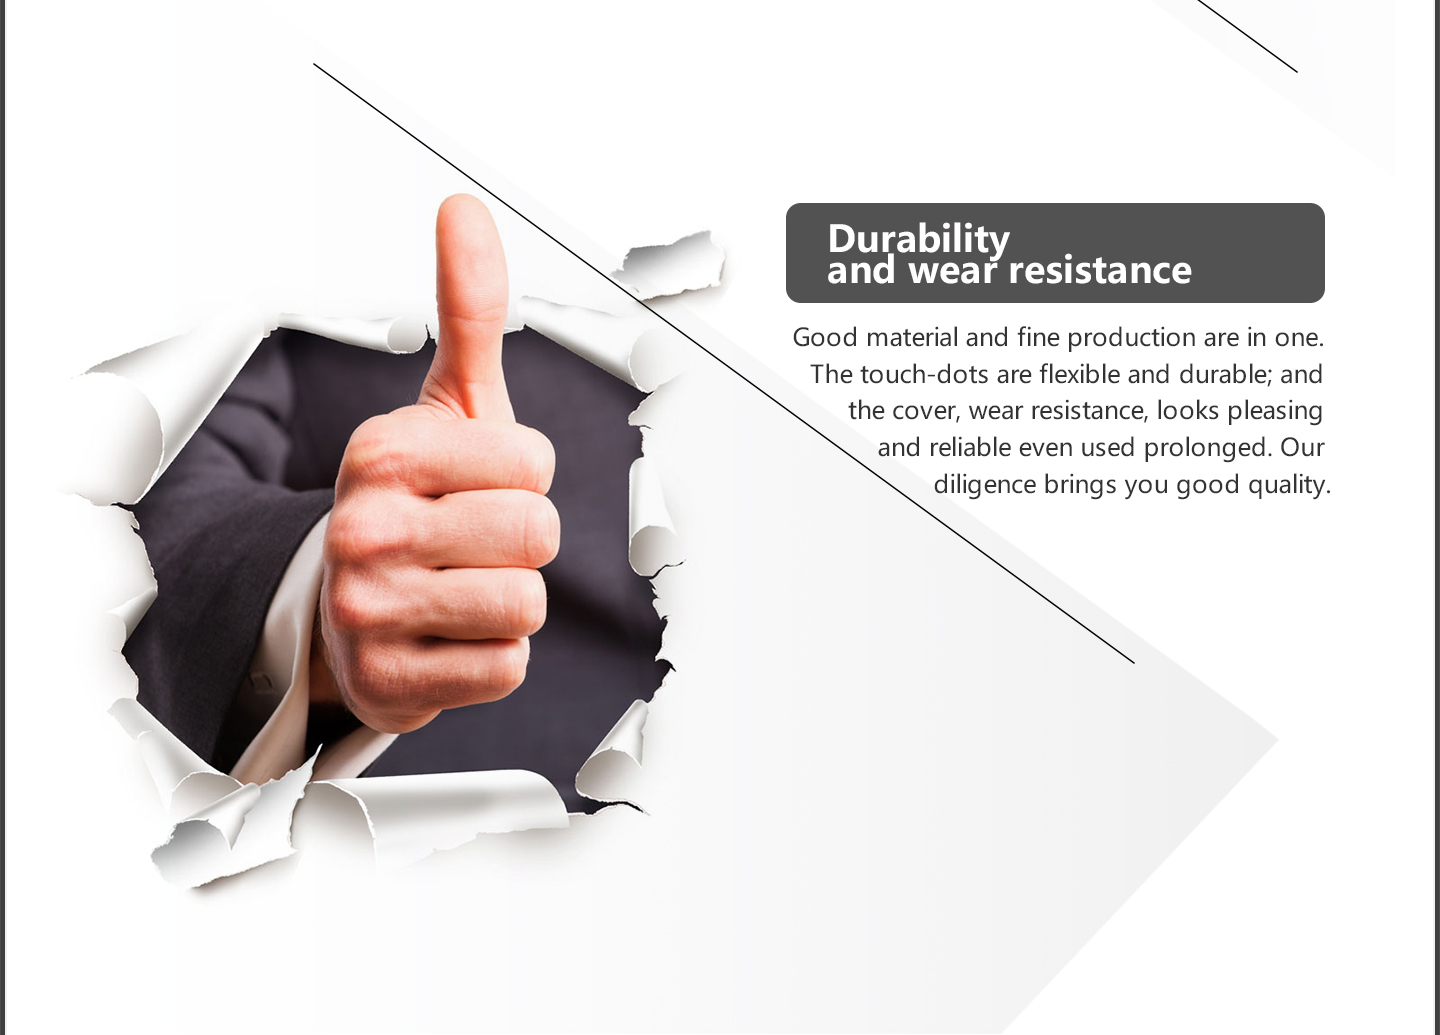 Durbility and wear resistance